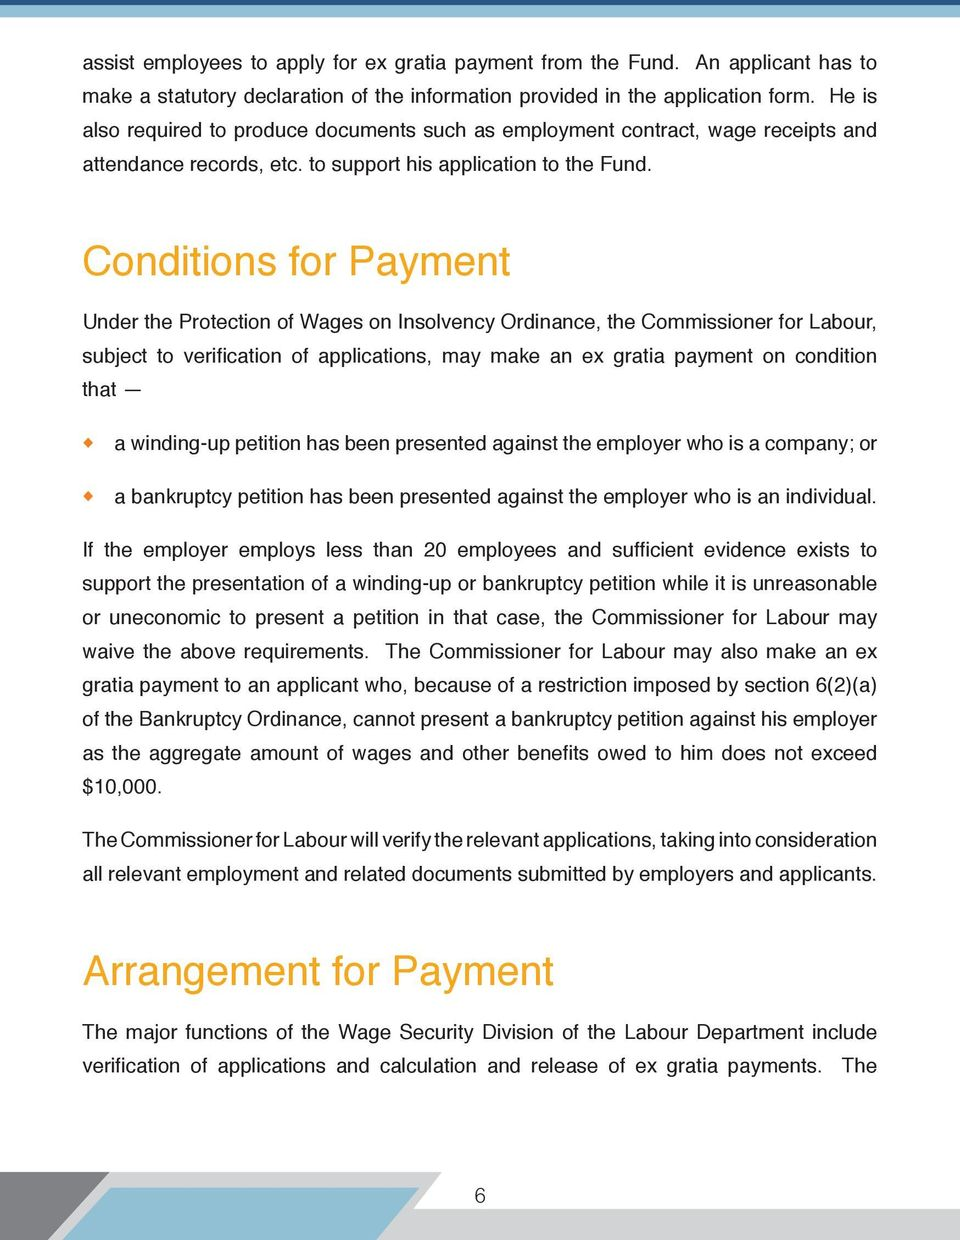 Conditions for Payment Under the Protection of Wages on Insolvency Ordinance, the Commissioner for Labour, subject to verification of applications, may make an ex gratia payment on condition that a